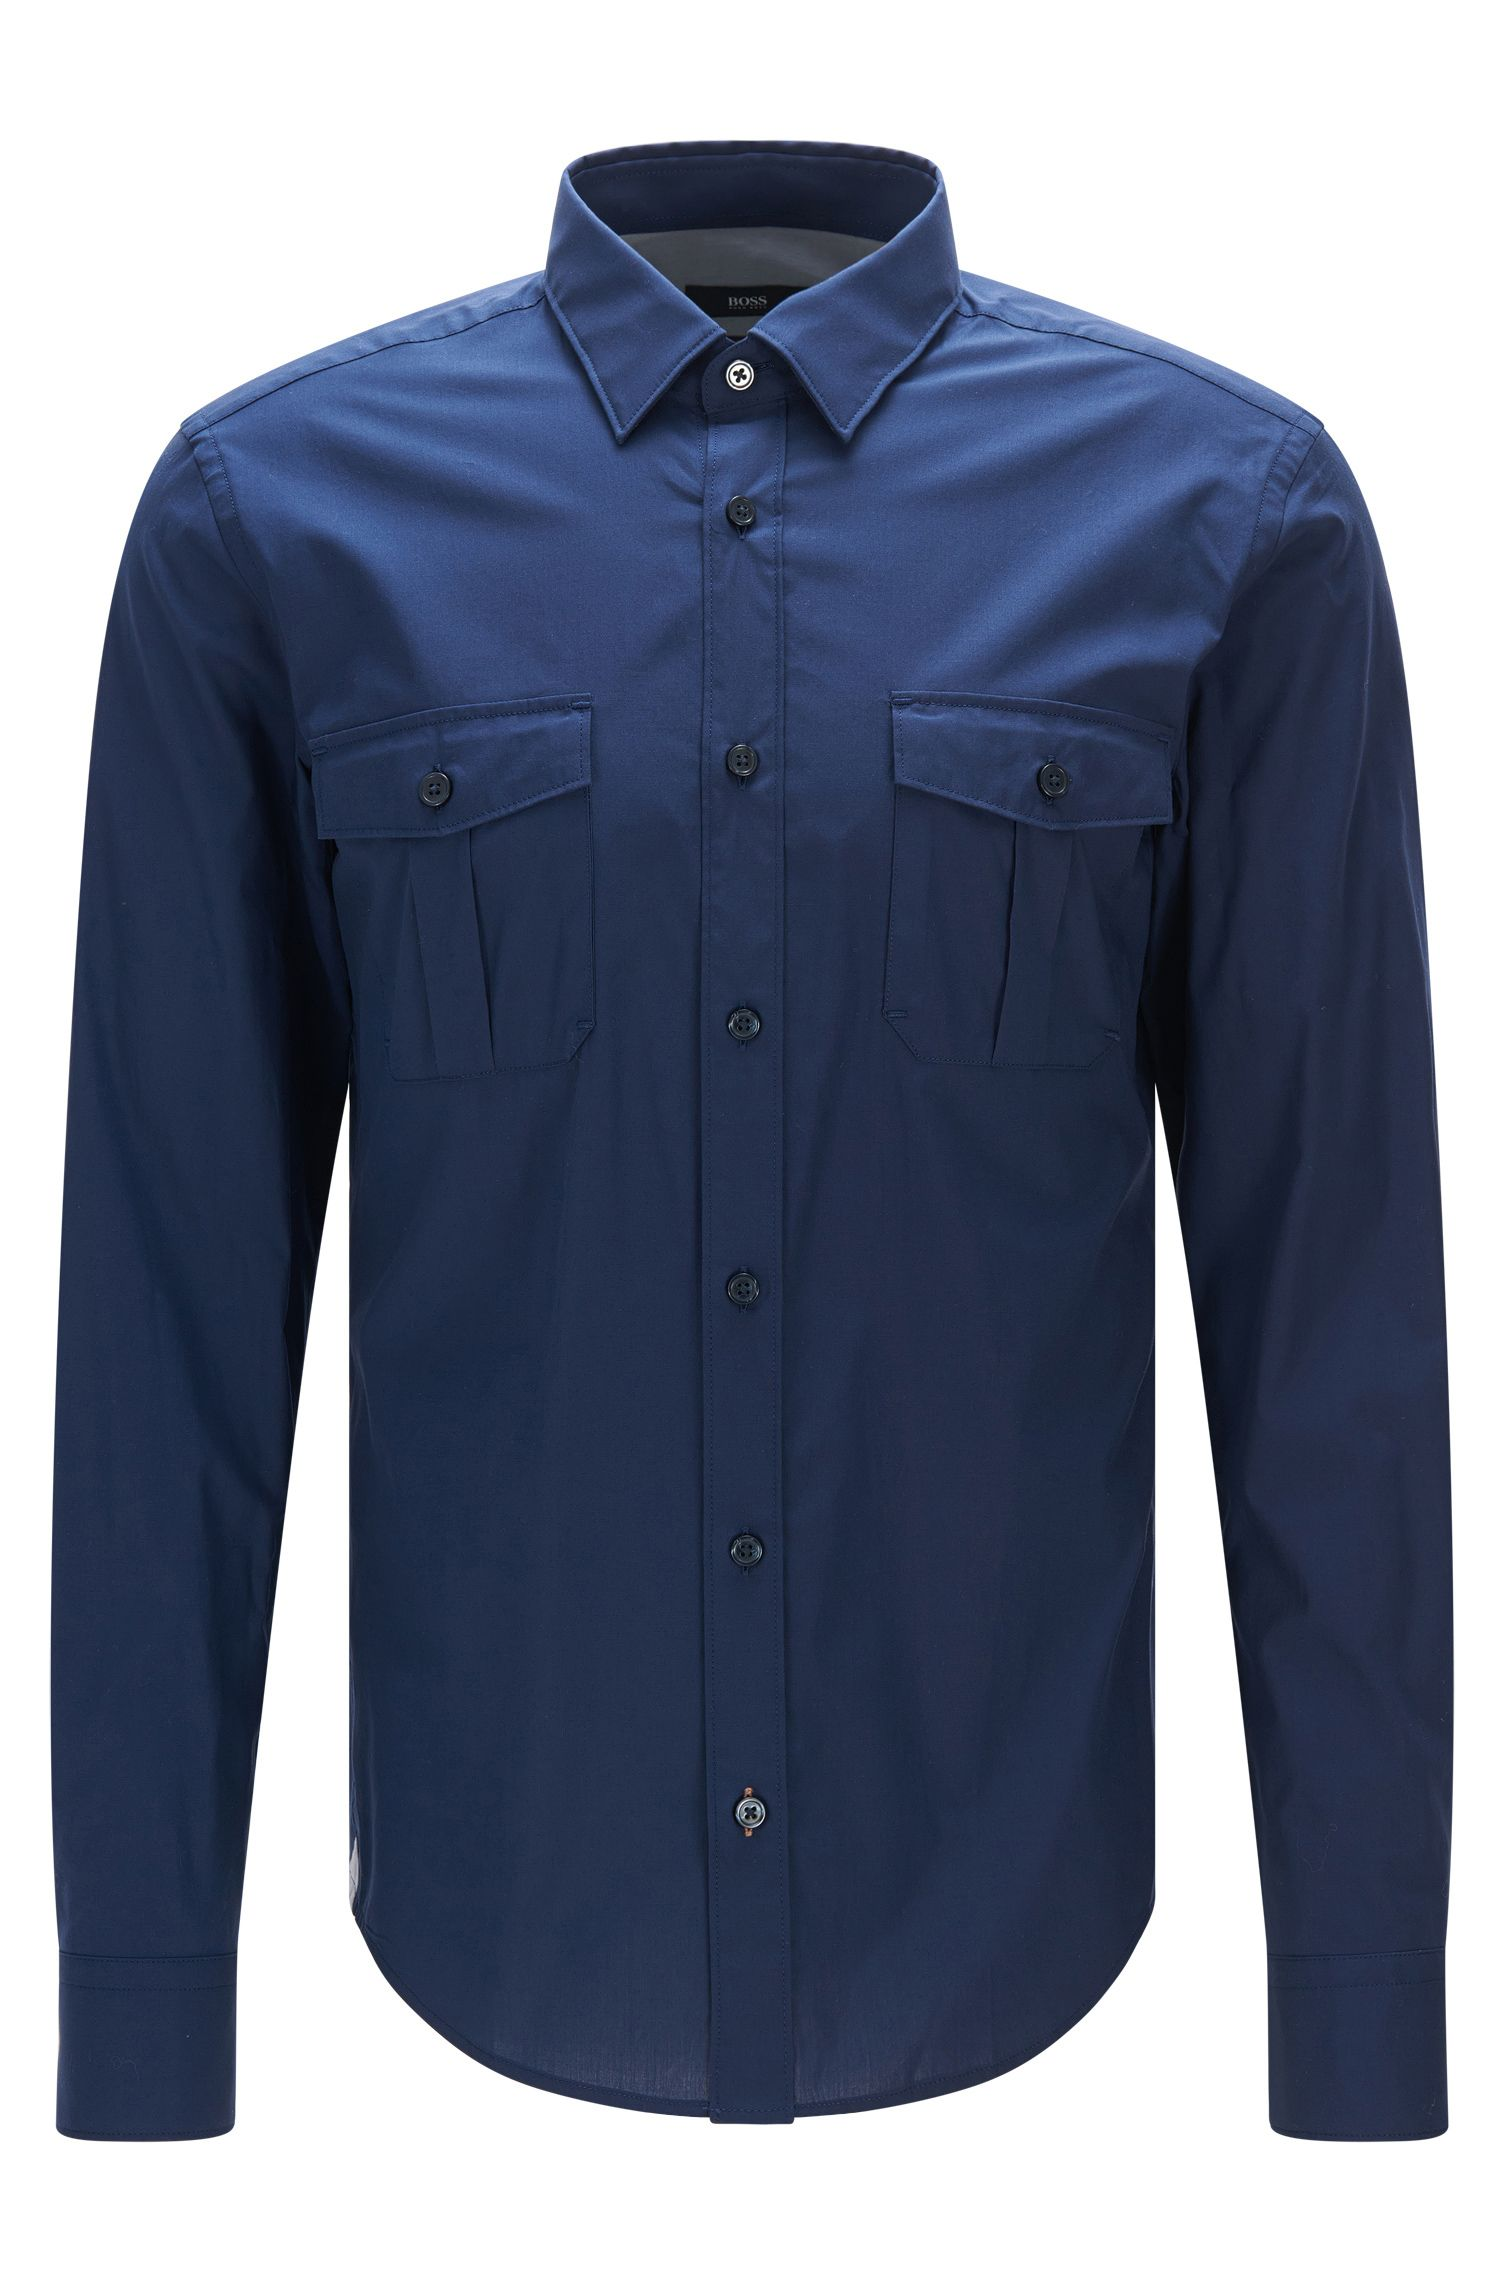 Stretch Cotton Button Down Shirt with Stretch Tailoring, Slim Fit | Ramsey